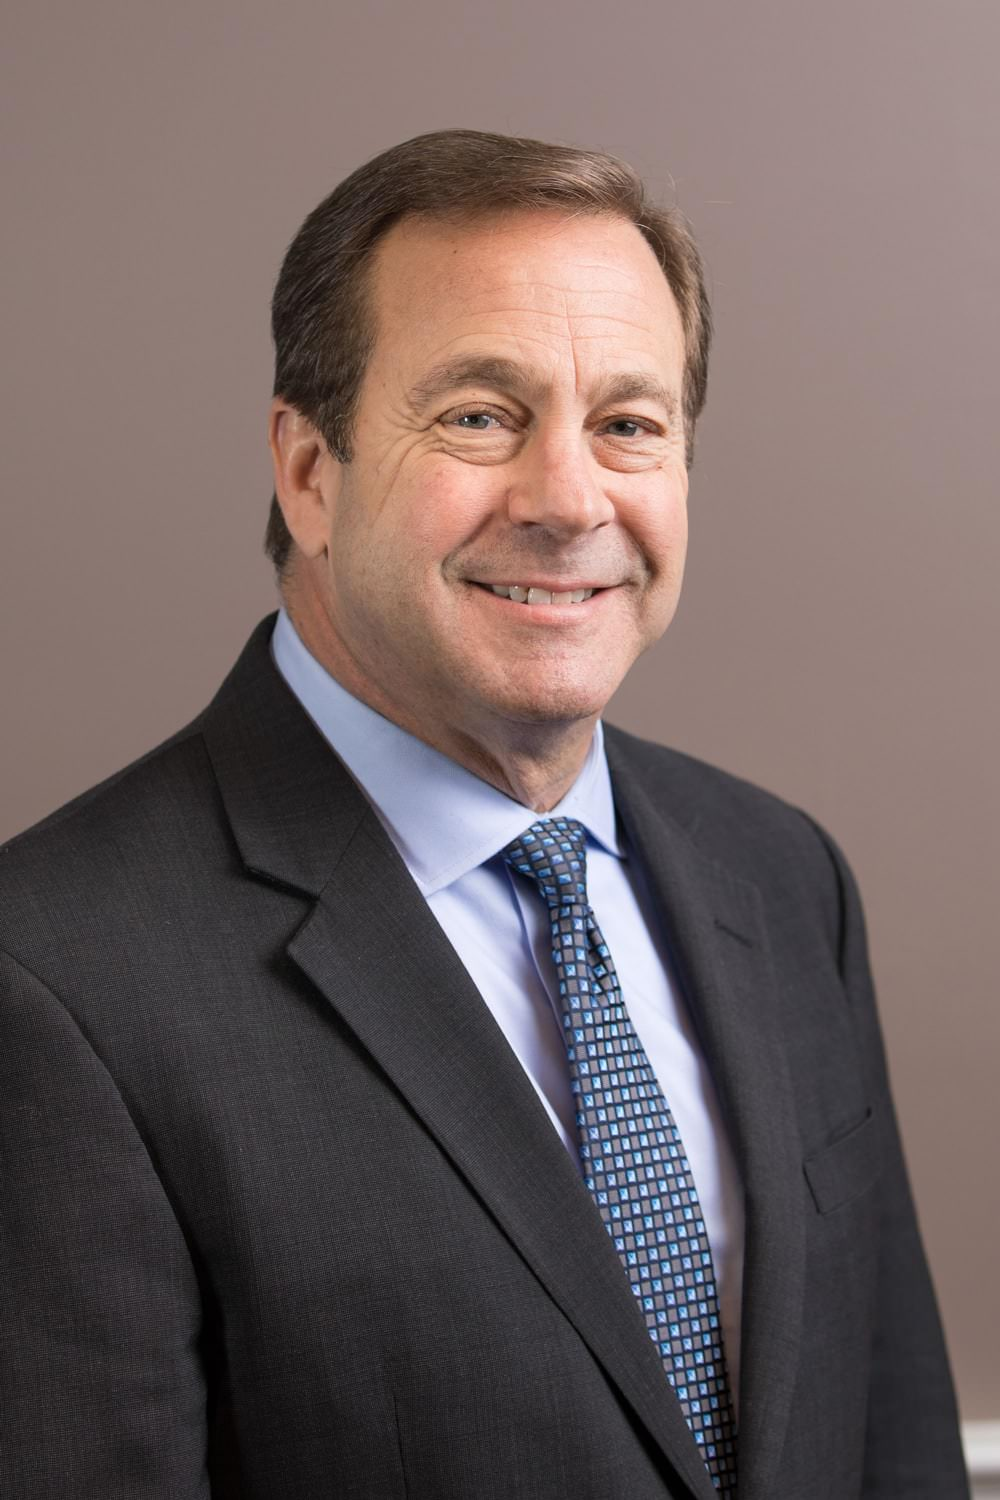 NJBIZ Article Features FPSC Partner Louis Cappelli Jr. On City Of Camden